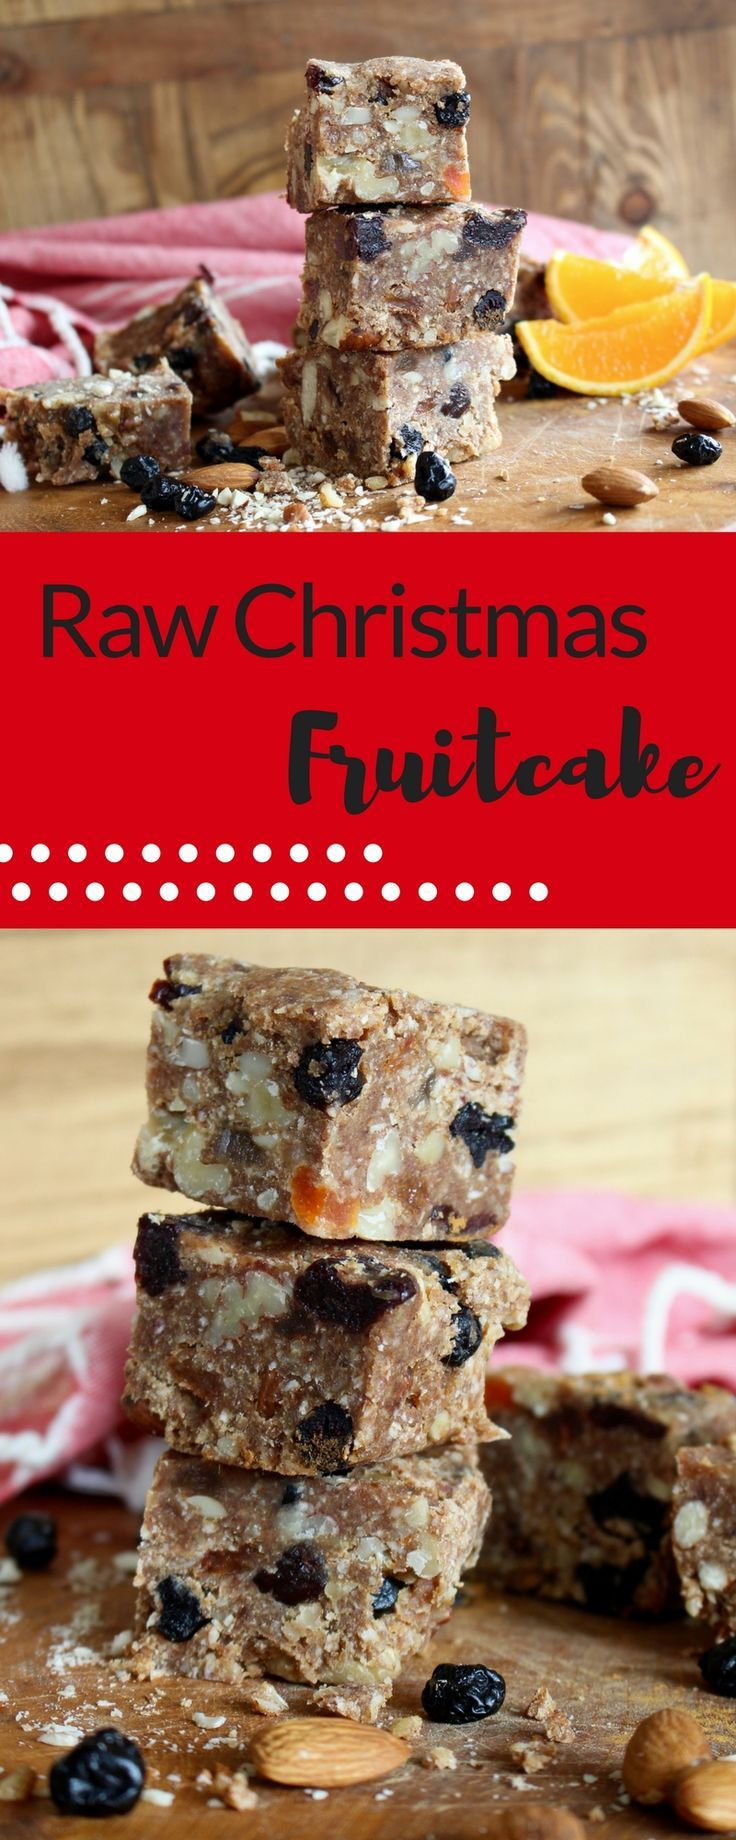 Make this no bake fruitcake using dates, nuts and your favourite combination of dried fruits.